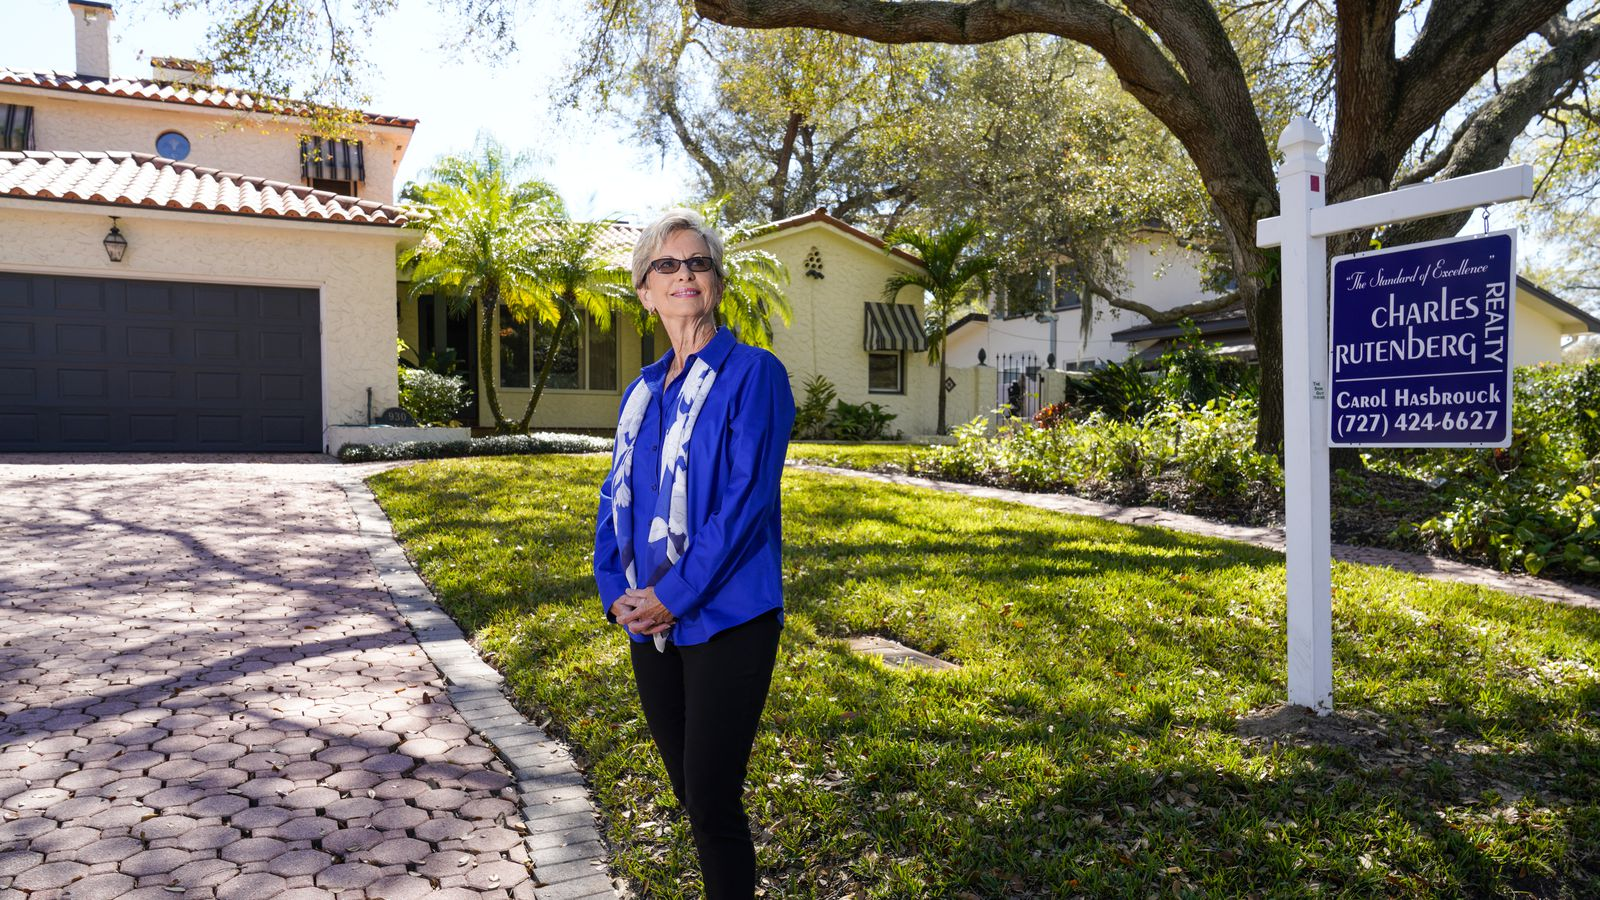 The Florida housing market is booming. Is a crash ahead?